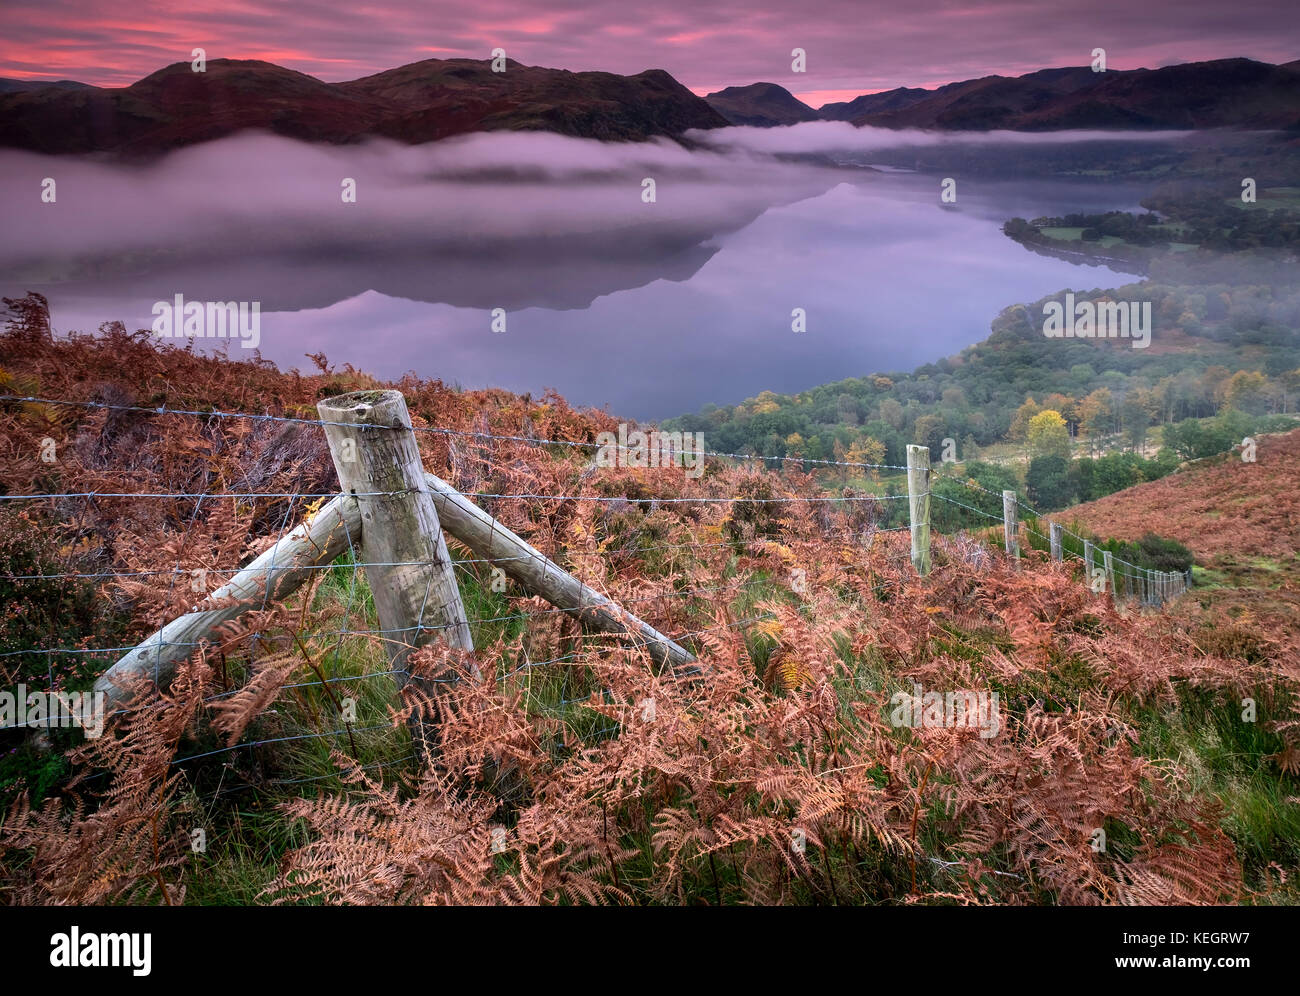 Into the Mist, Ullswater at Dawn from Gowbarrow Fell, Lake District National Park, Cumbria, England, UK - Stock Image